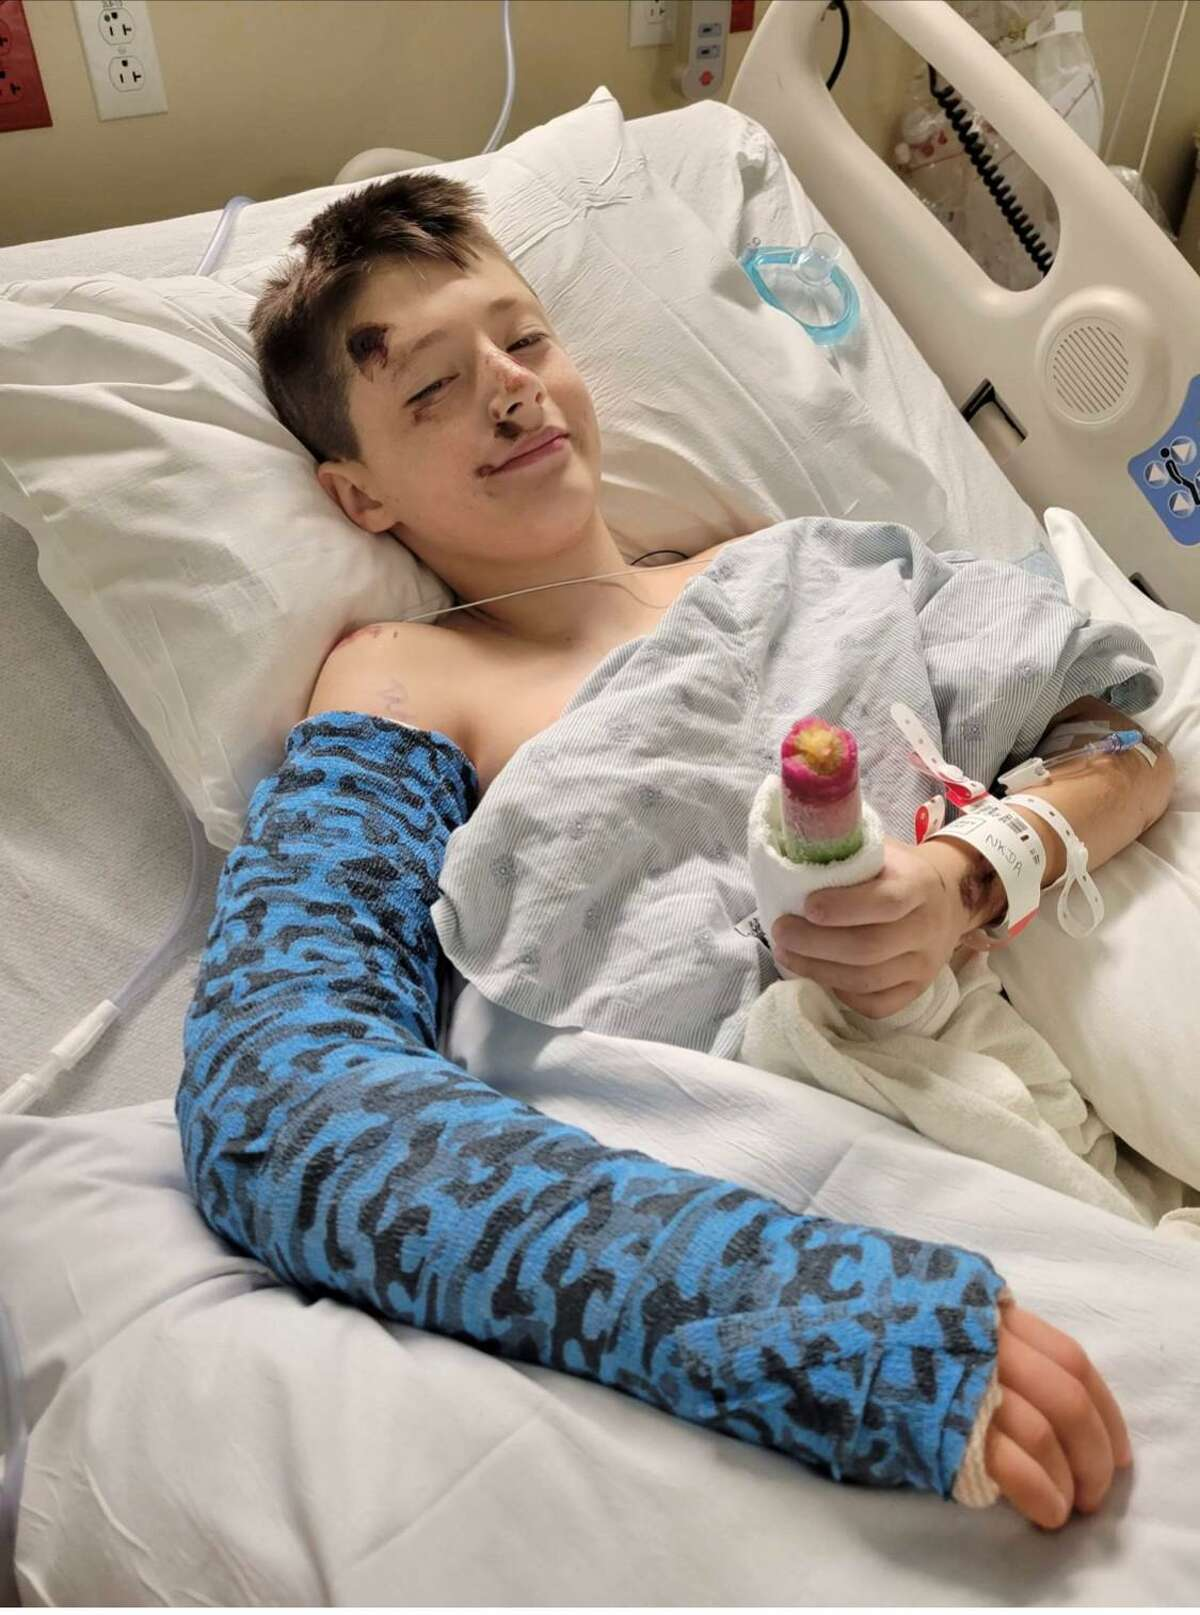 Levi Brizuela, a Bear Branch Junior High sixth grader in Magnolia. He was hospitalized Sunday after being struck by a car at the intersection of Community Road and Mostyn Drive.